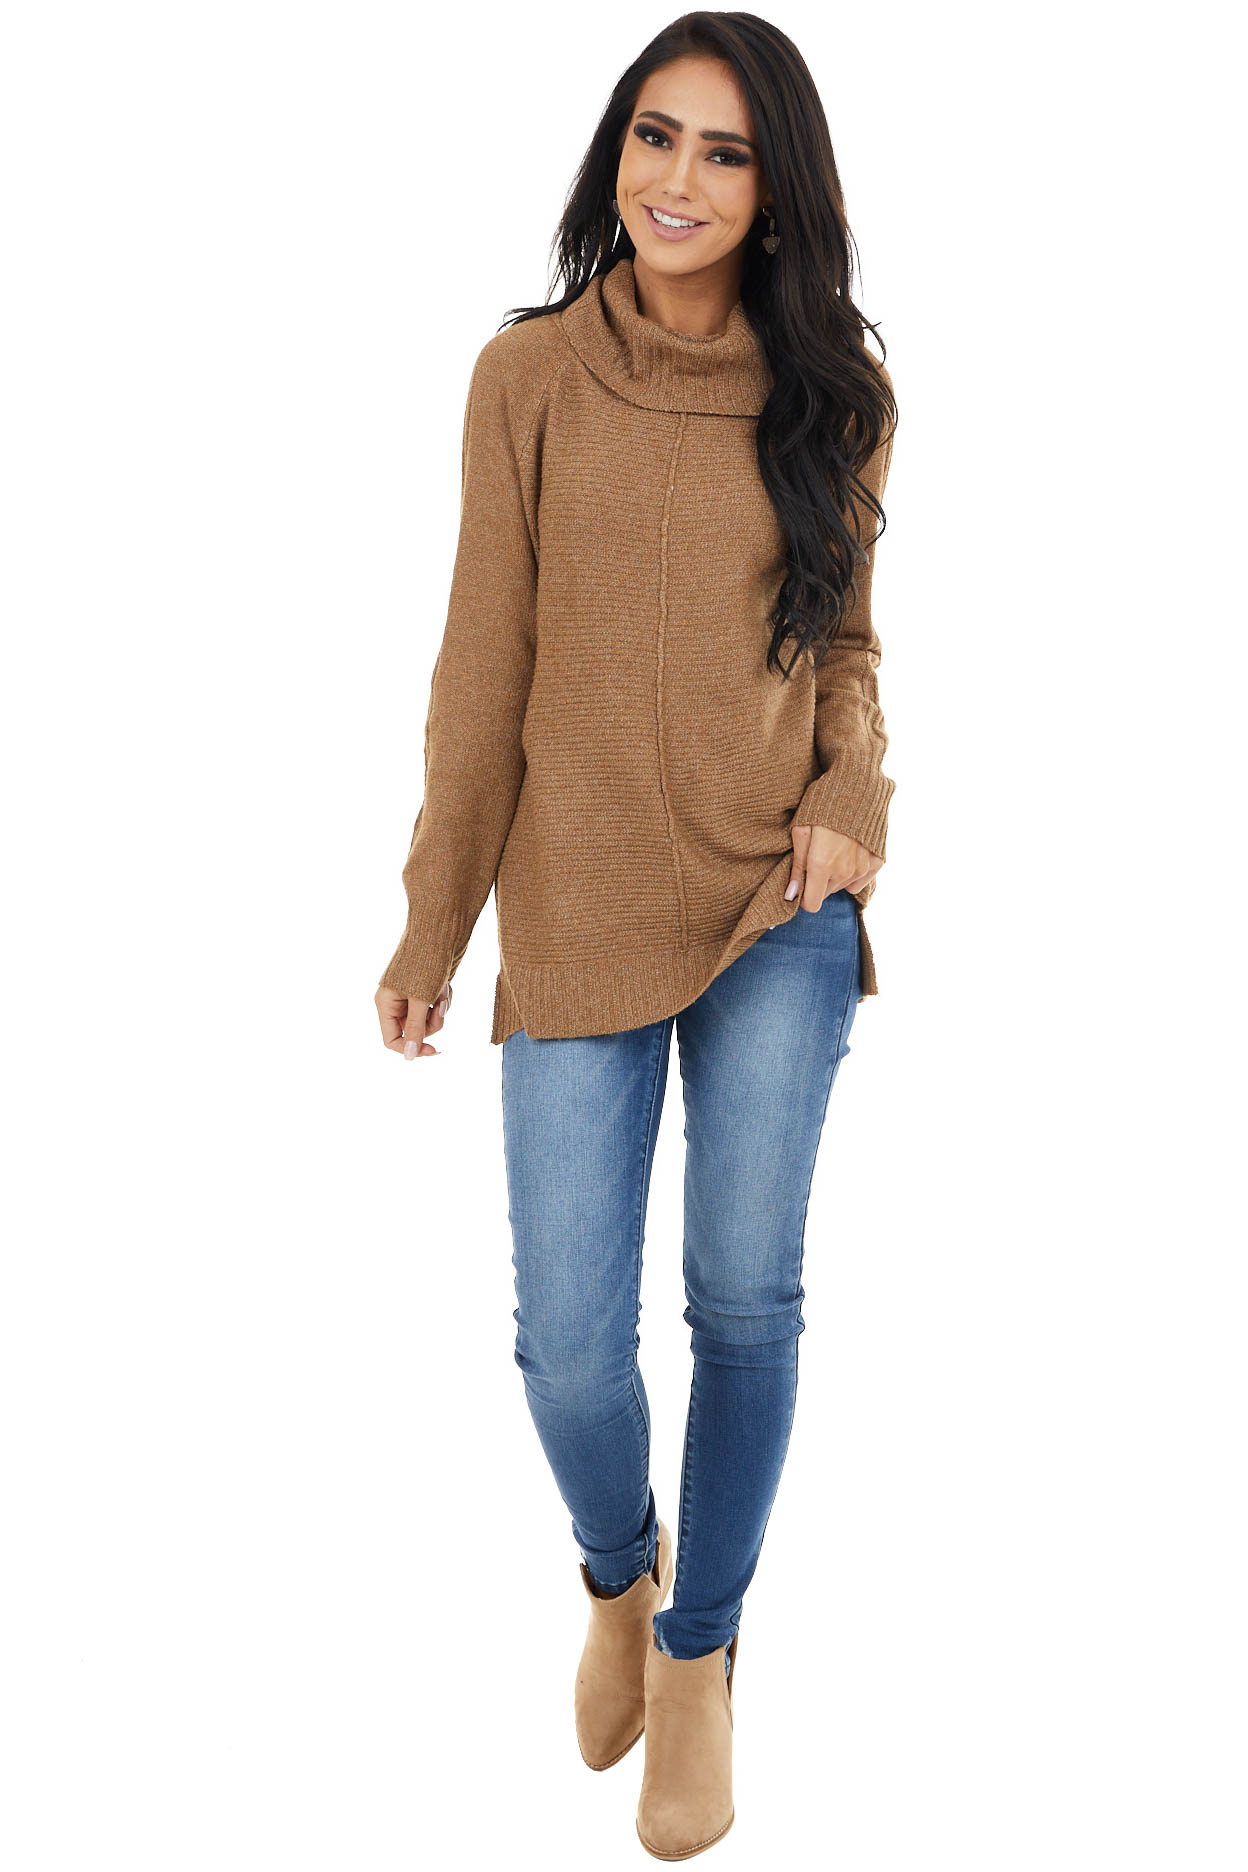 Heathered Camel Cowl Neck Knit Sweater with Texture Detail